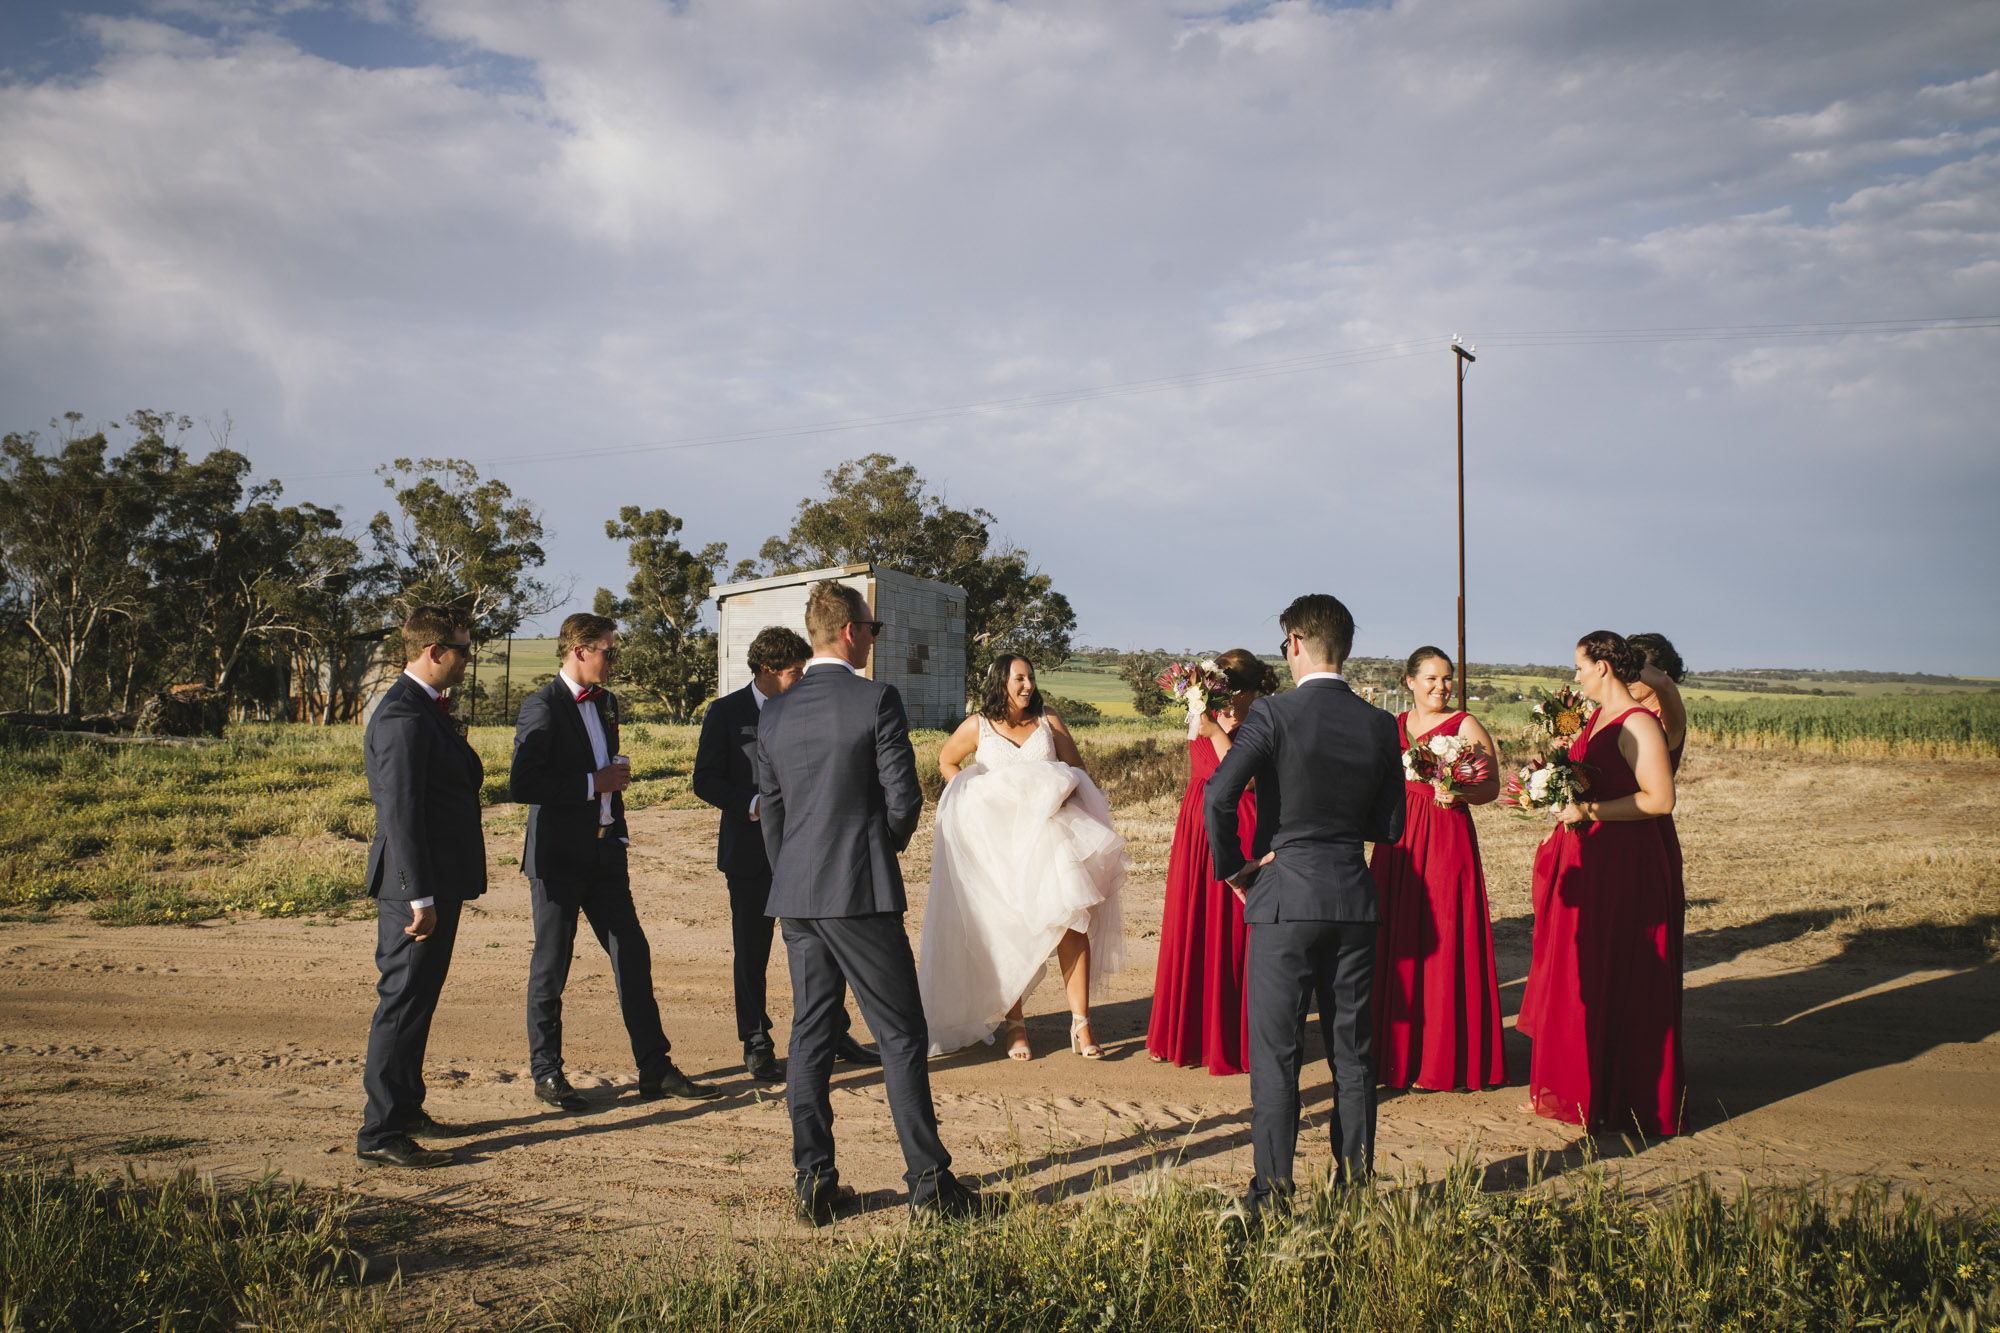 Angie-Roe-Photography-Wedding-Perth-Northam-Wheatbelt-Country-Rural (45).jpg